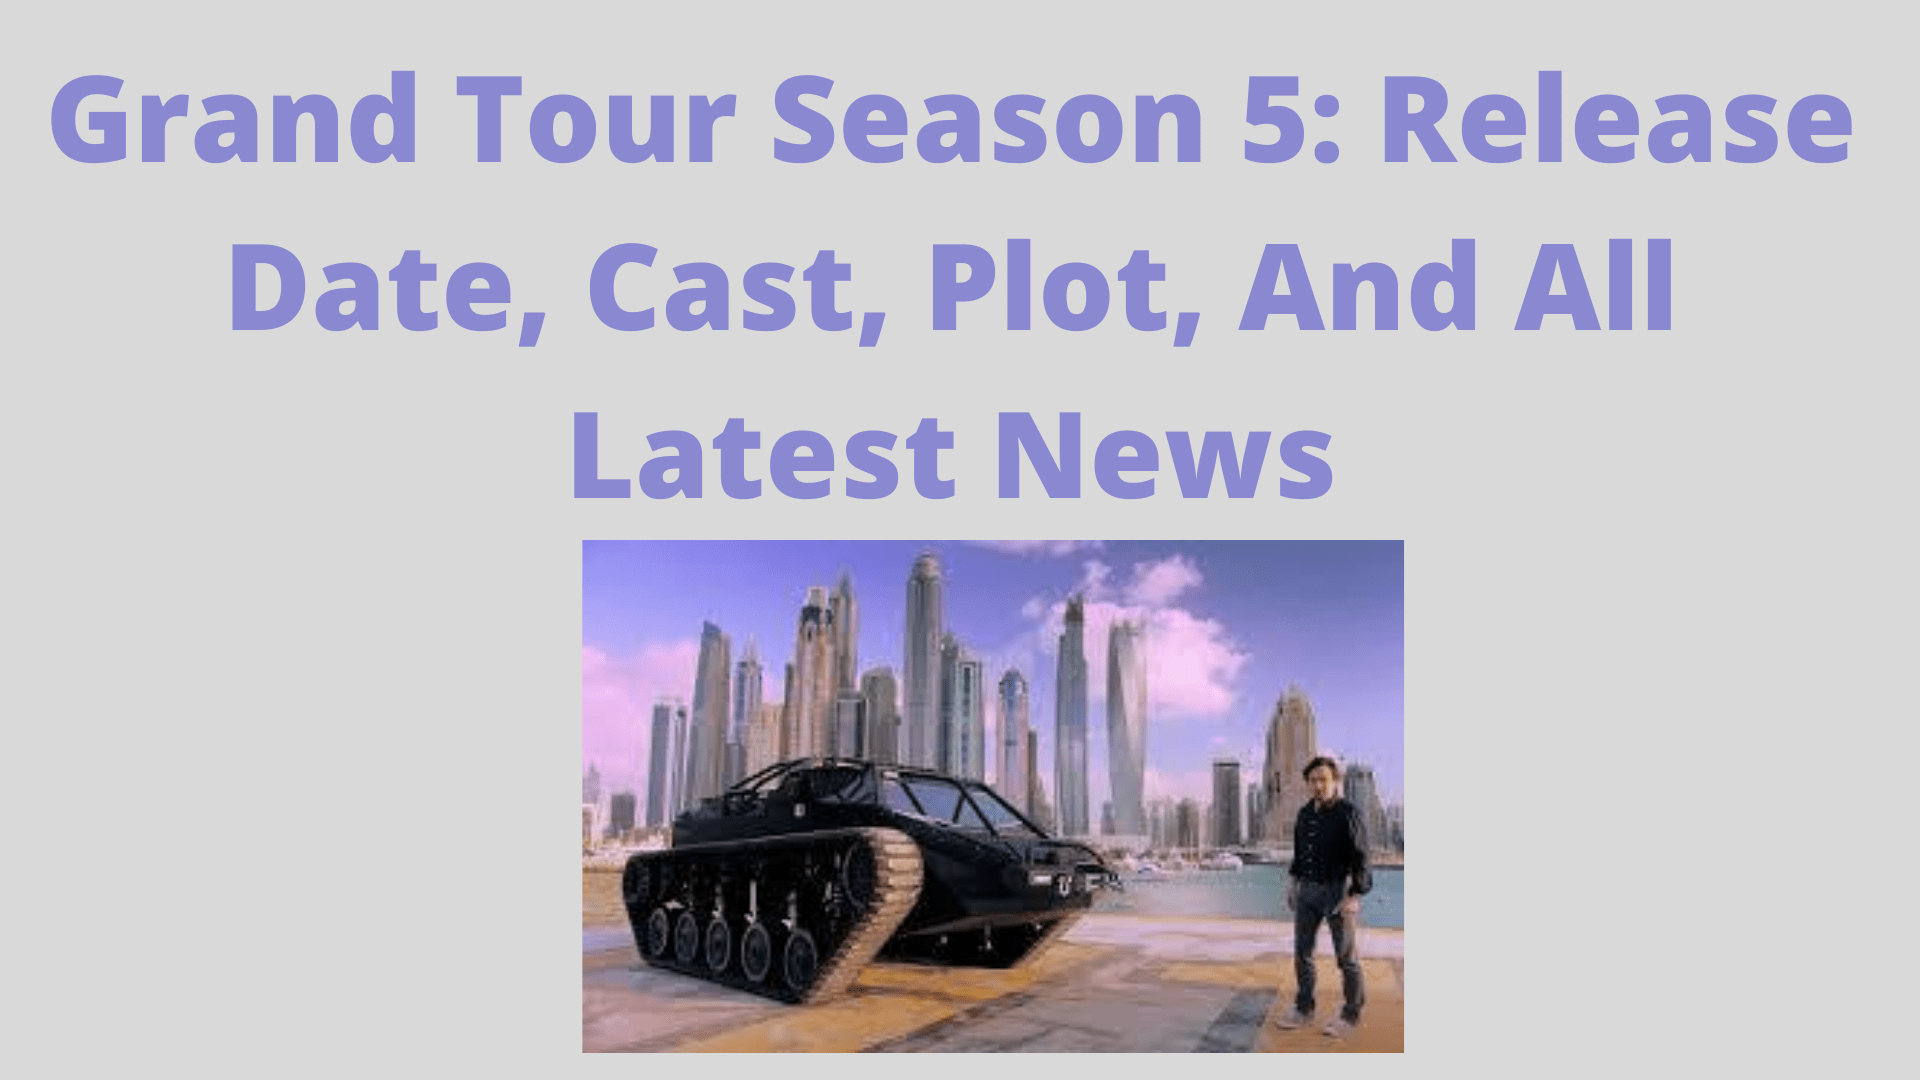 Grand Tour Season 5: Release Date, Cast, Plot, And All Latest News